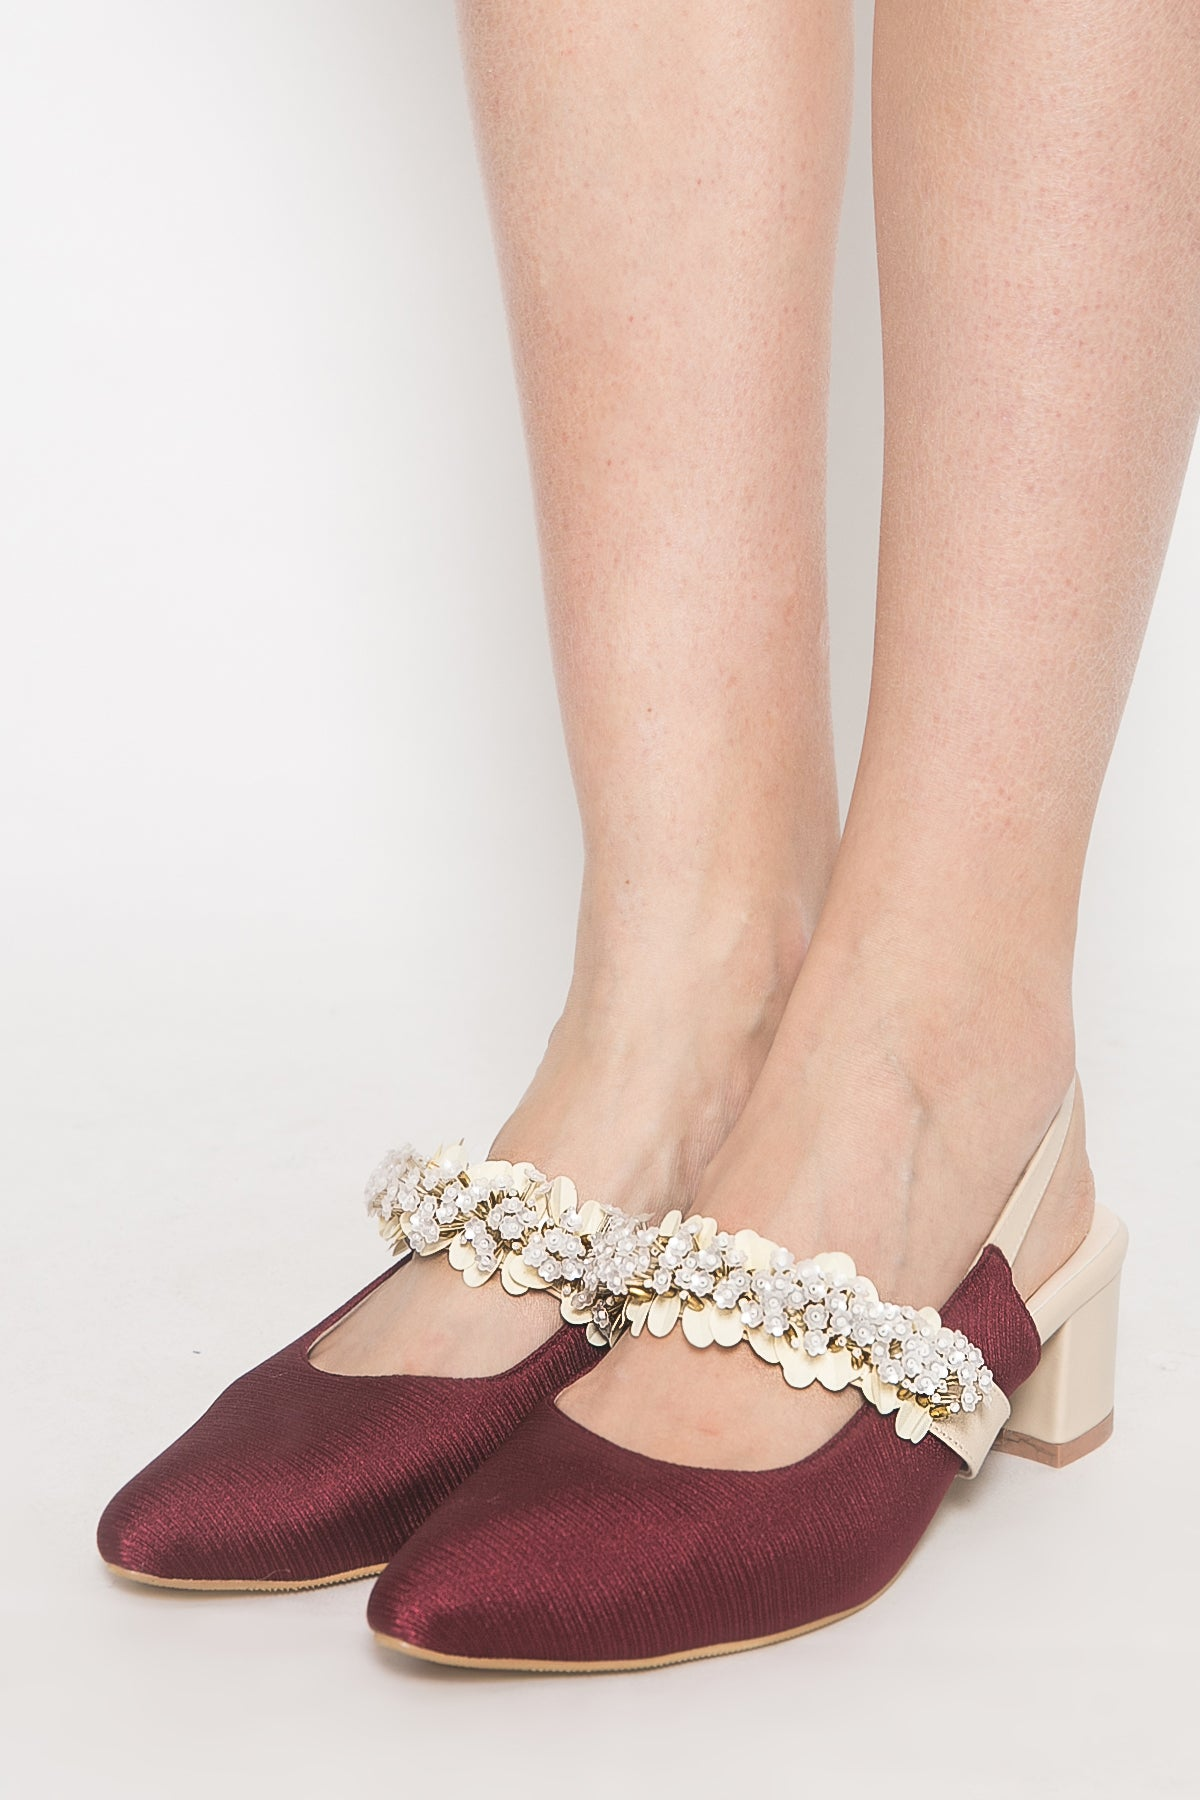 Giselle Shoes in Maroon